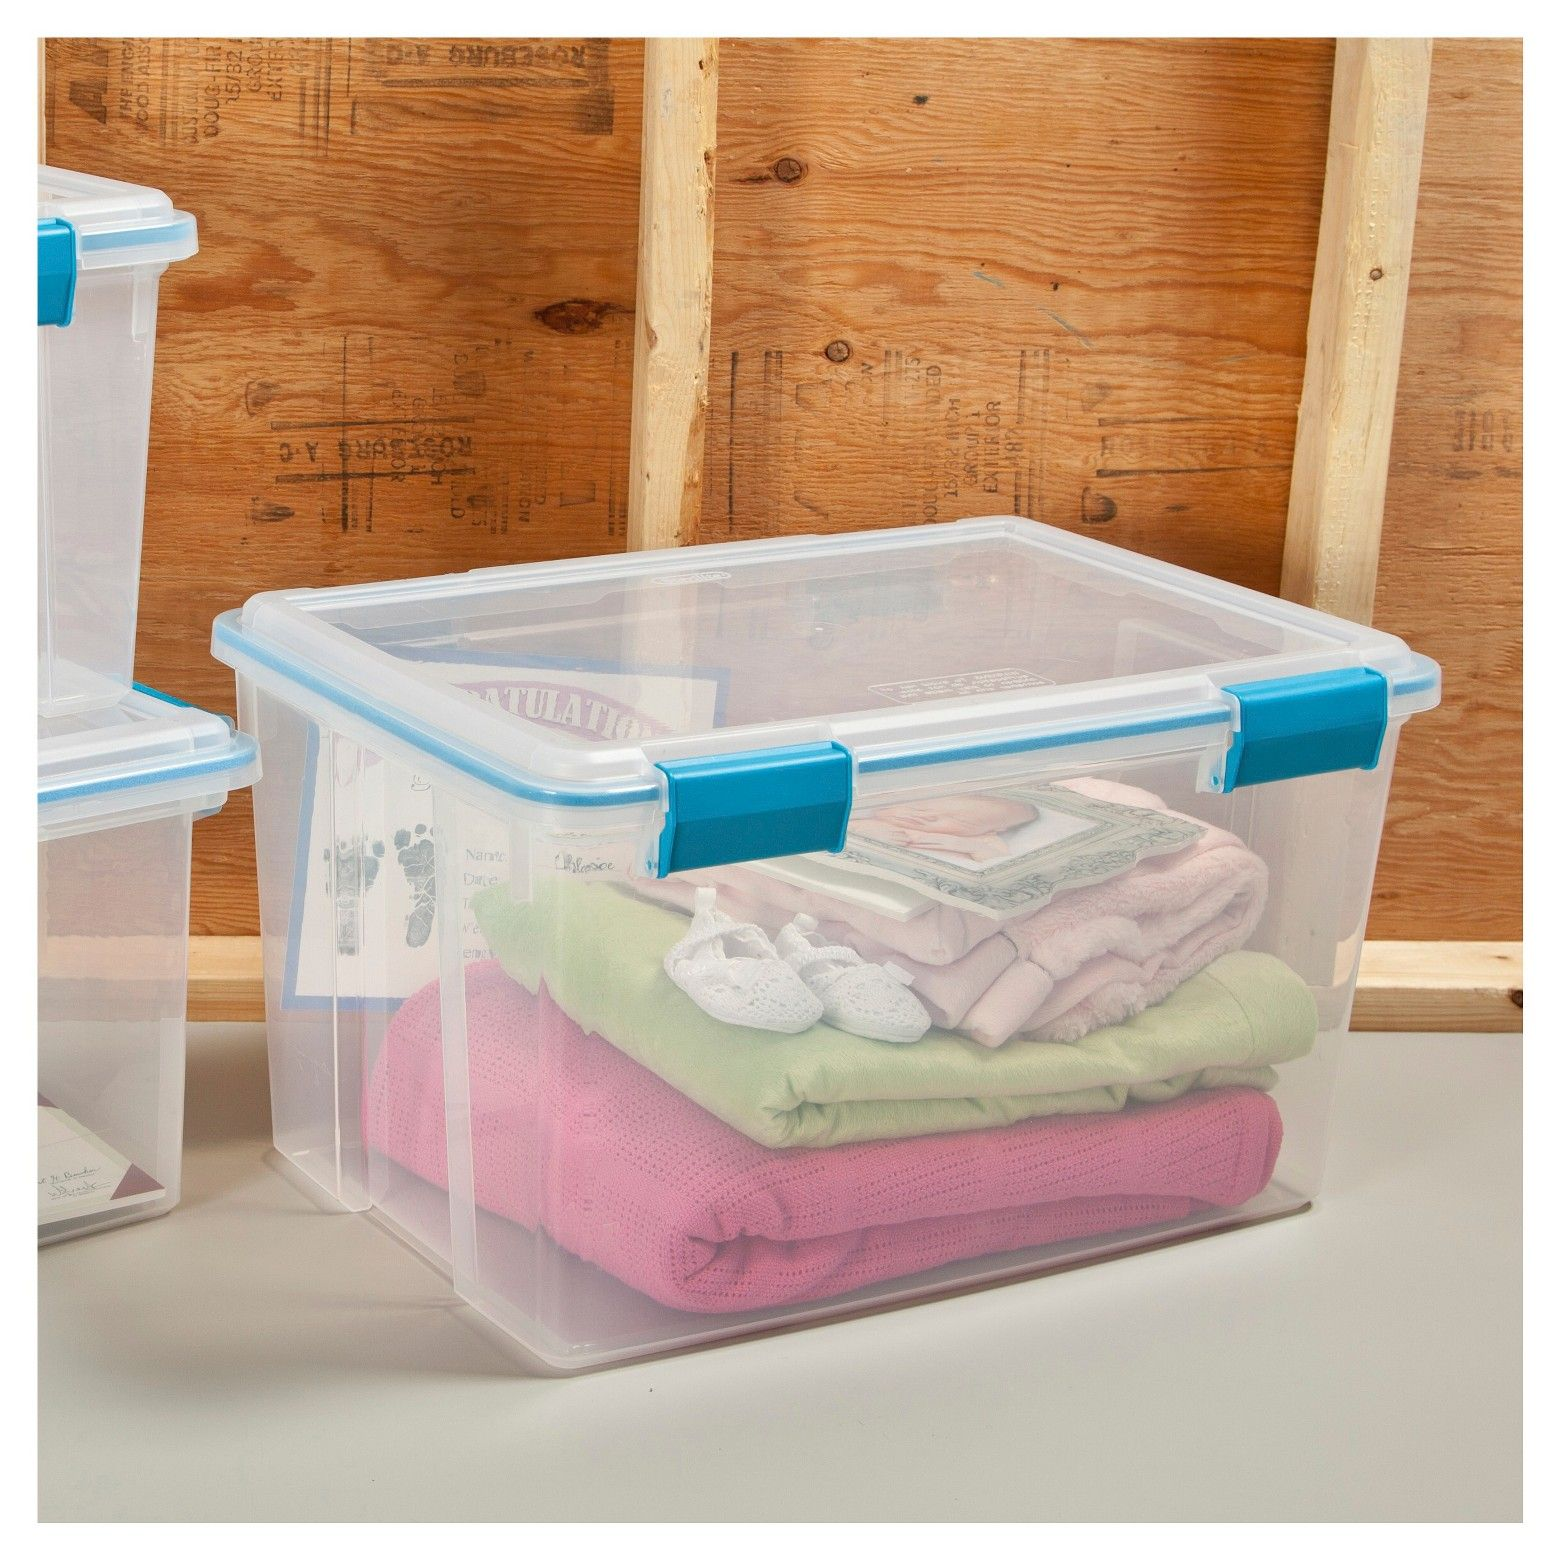 ideas rubbermaid together organizer dresser clear shoe tub big tubs with clos in lots rolling box cordial cart bookshelf target walmart largesize bins plastic of containers shoebox storage drawers